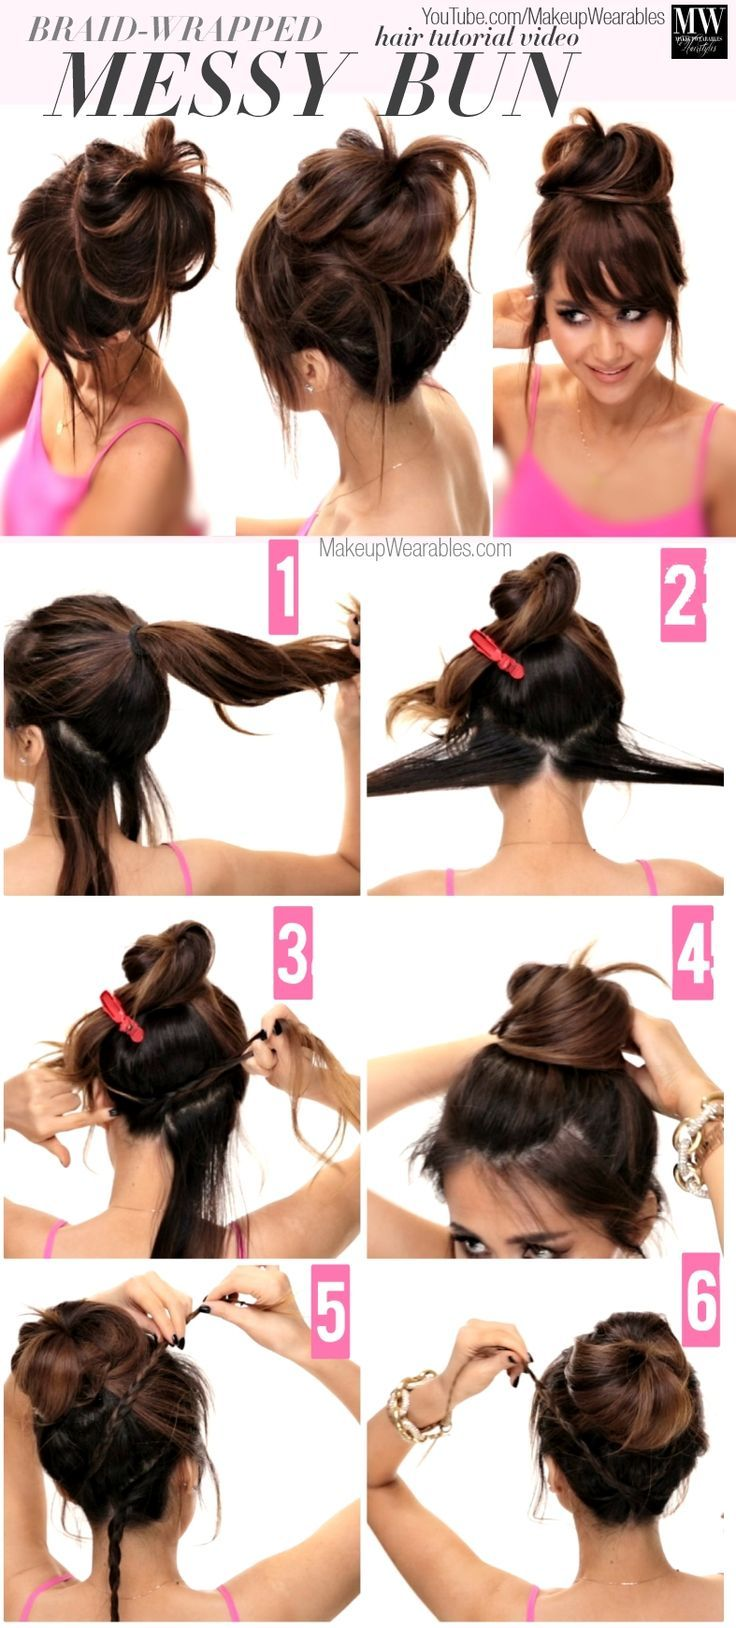 gow to create a big braided messy bun updo 4 Lazy Girls Easy Hairstyles | How to Cute Braids Messy Buns